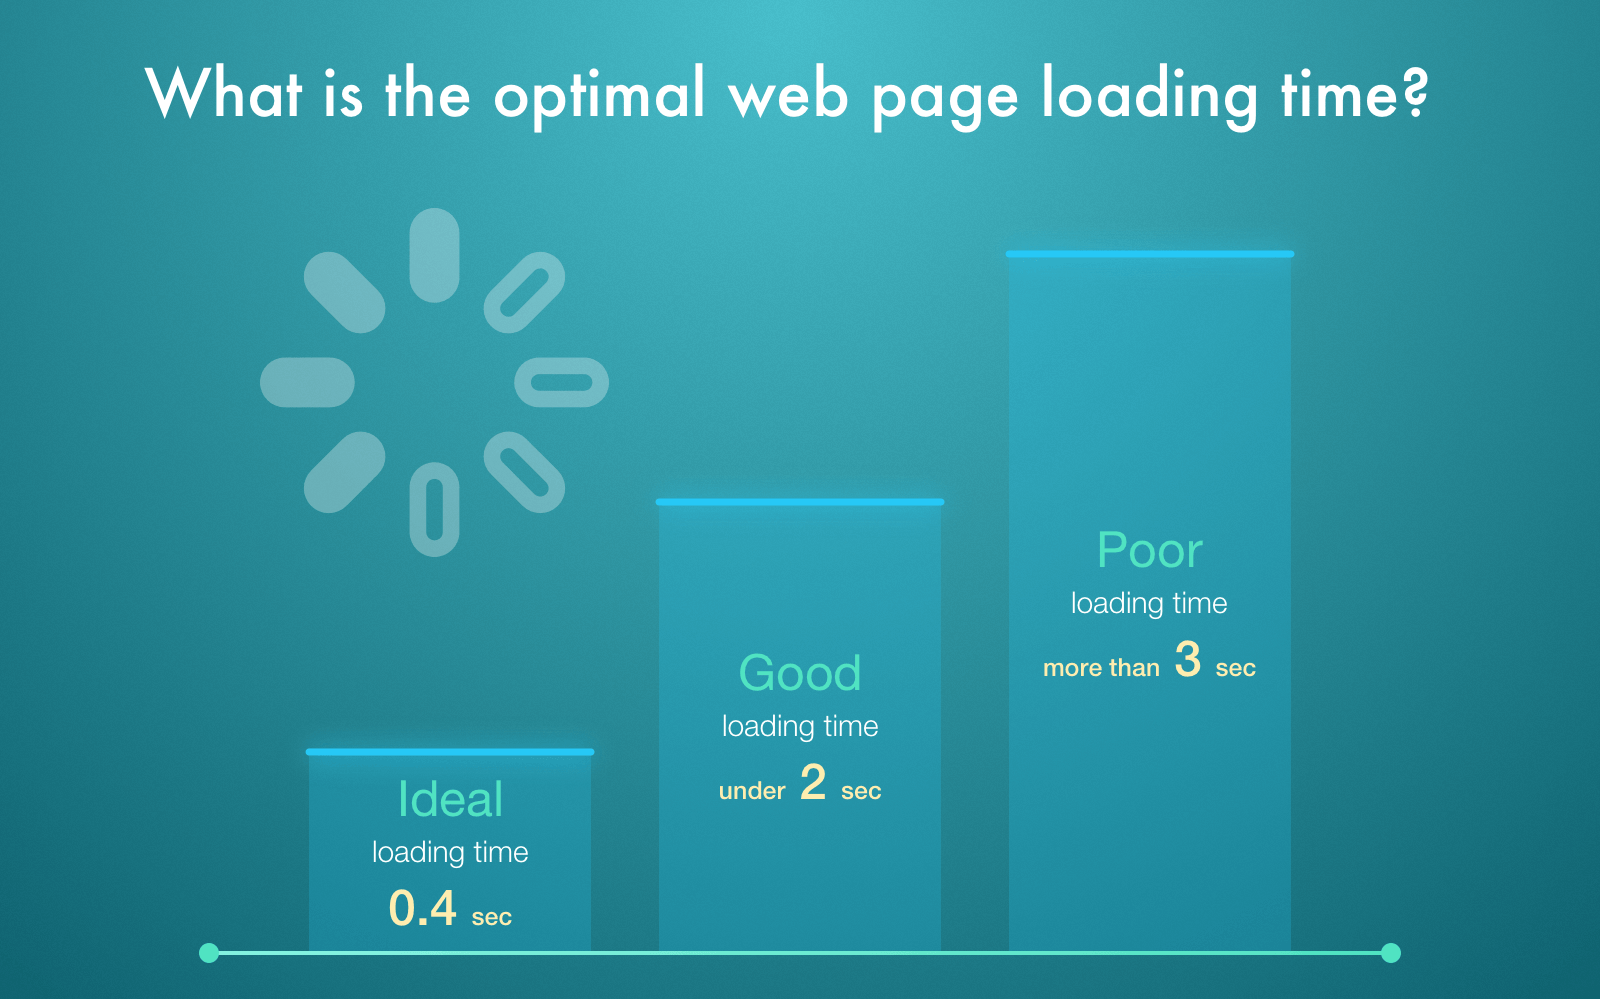 optimal web page loading time